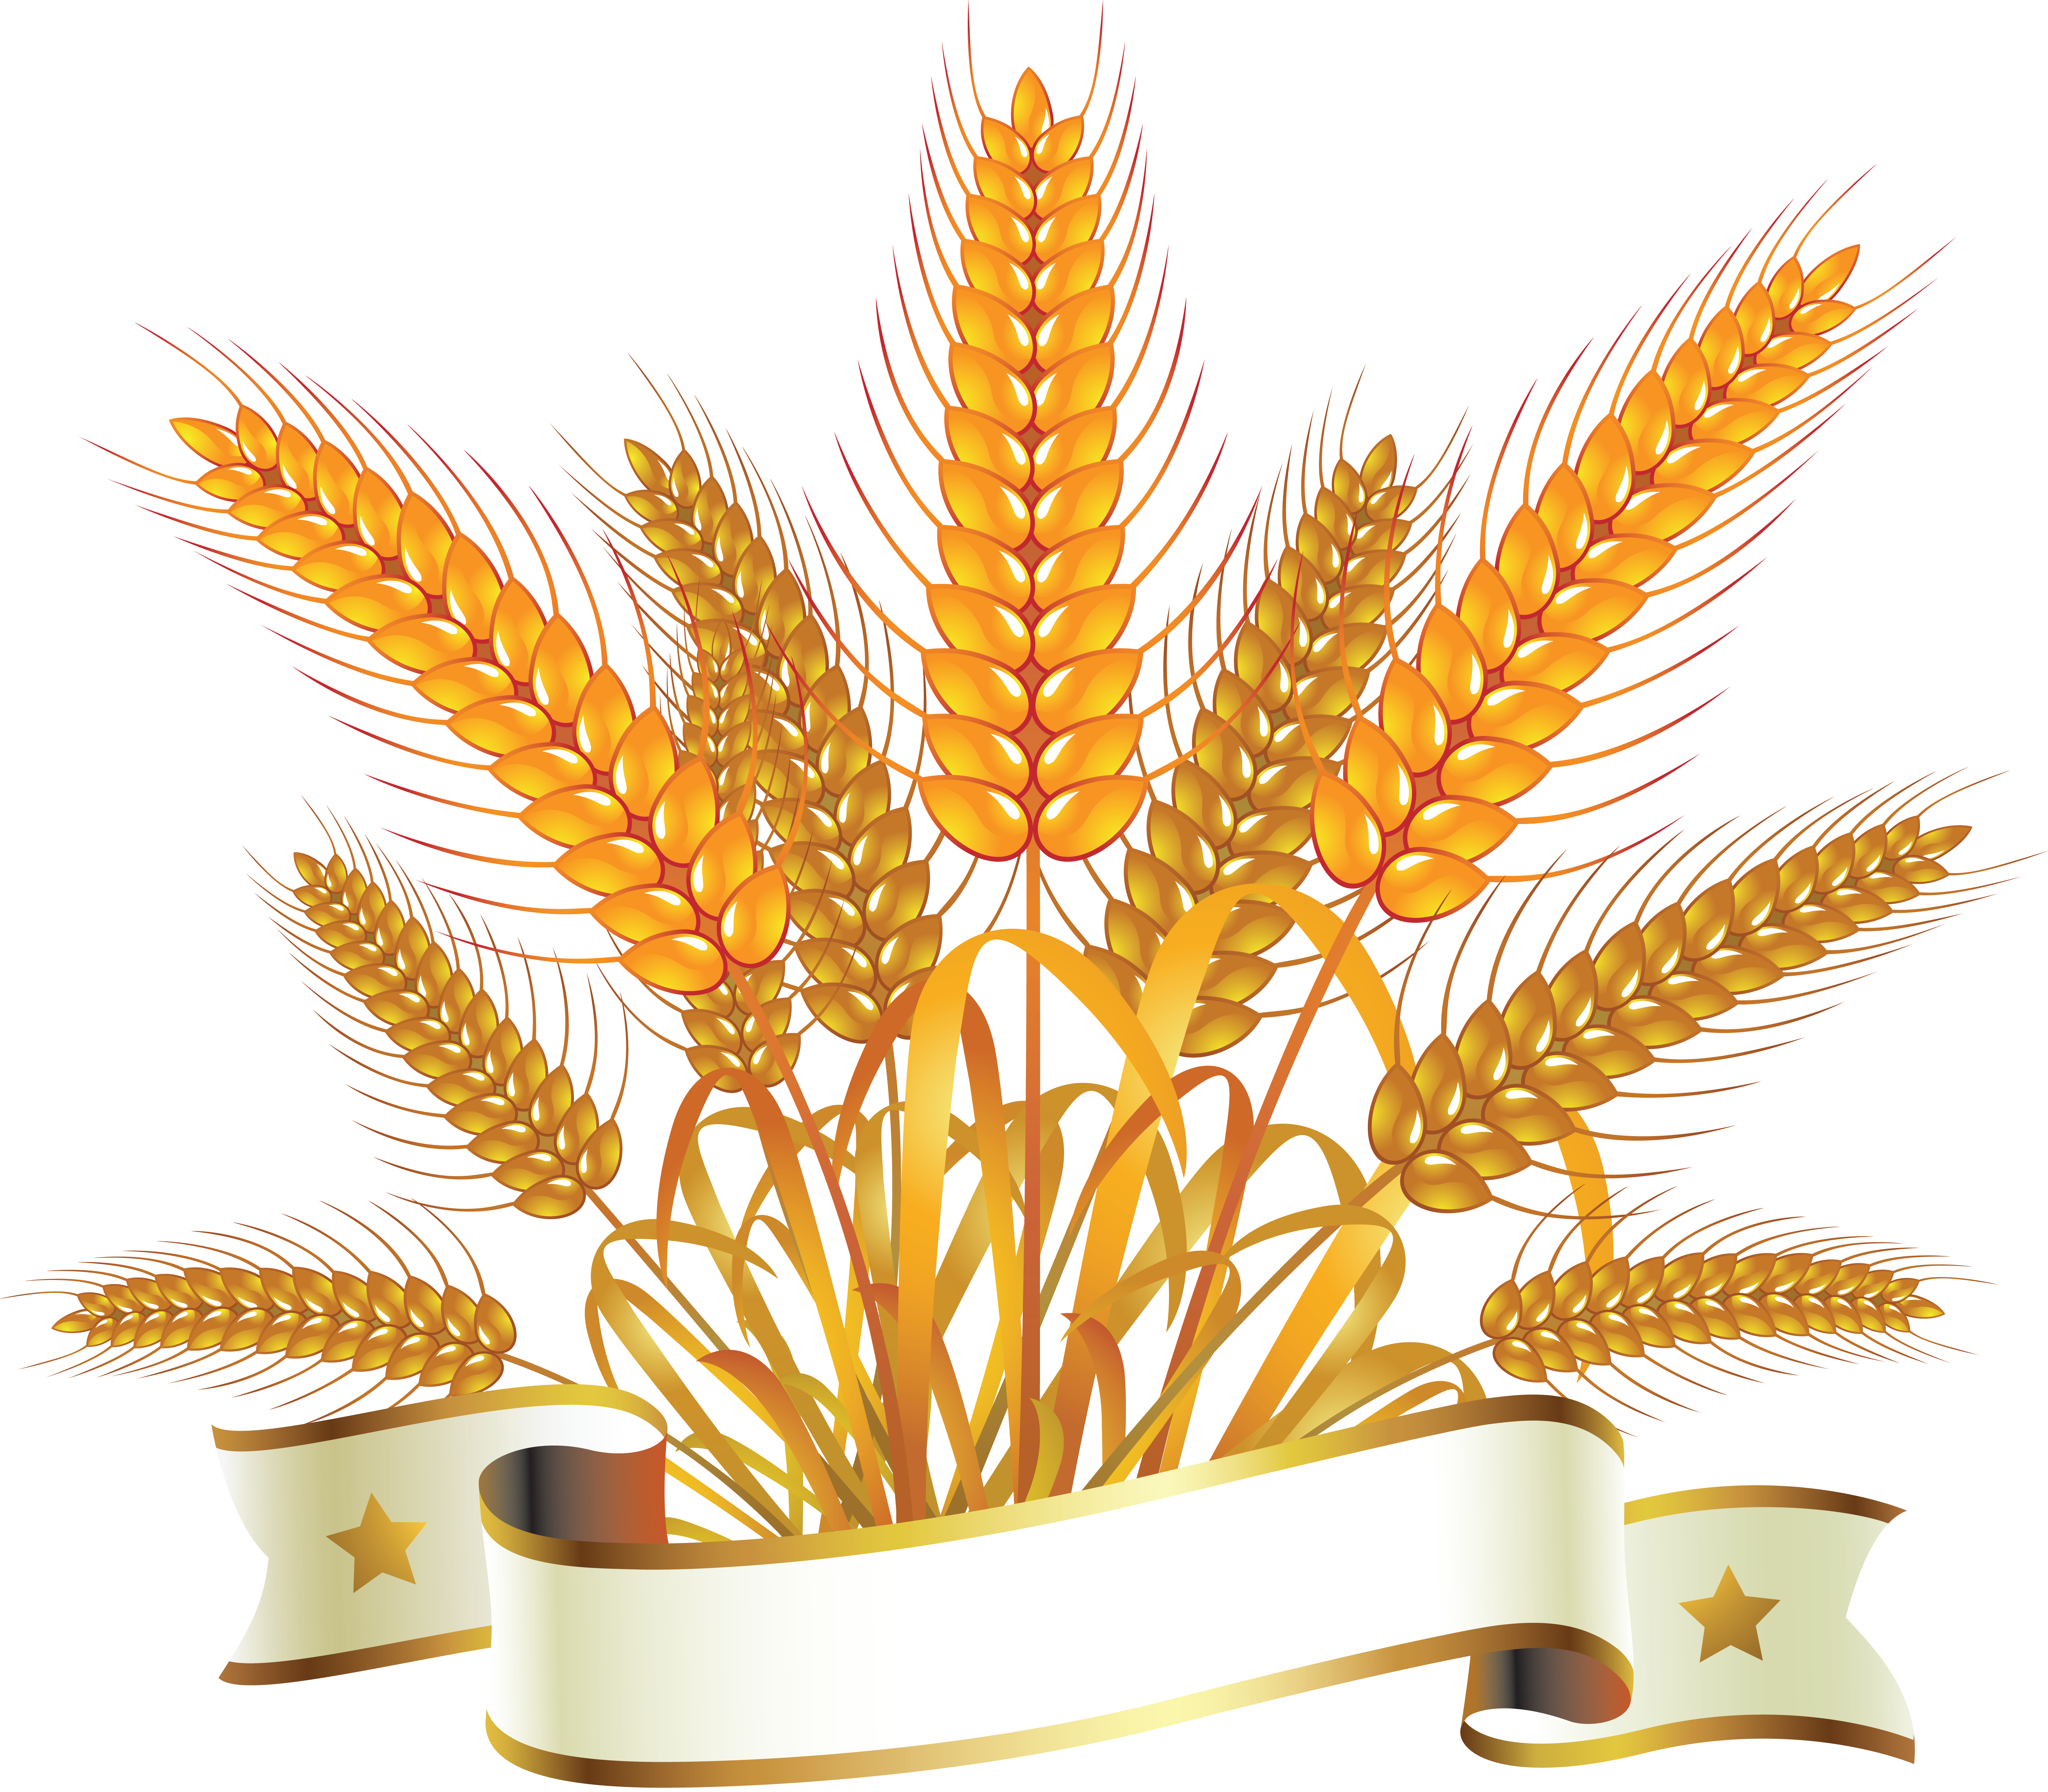 Grains clipart common. Wheat png images free